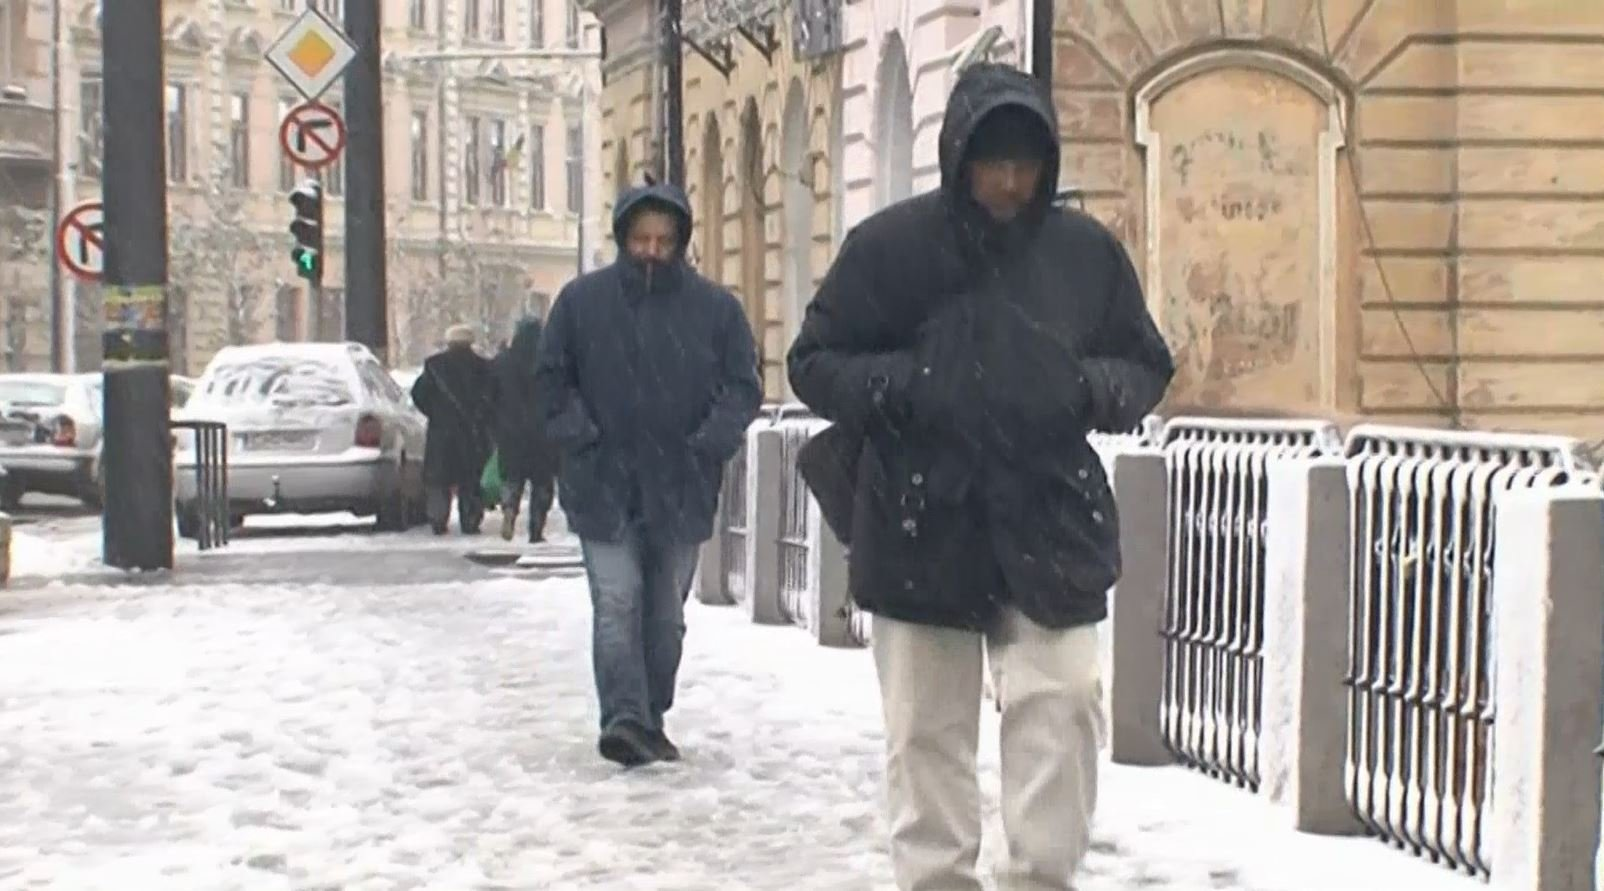 Citizens of Romania bearing snow and cold temps.